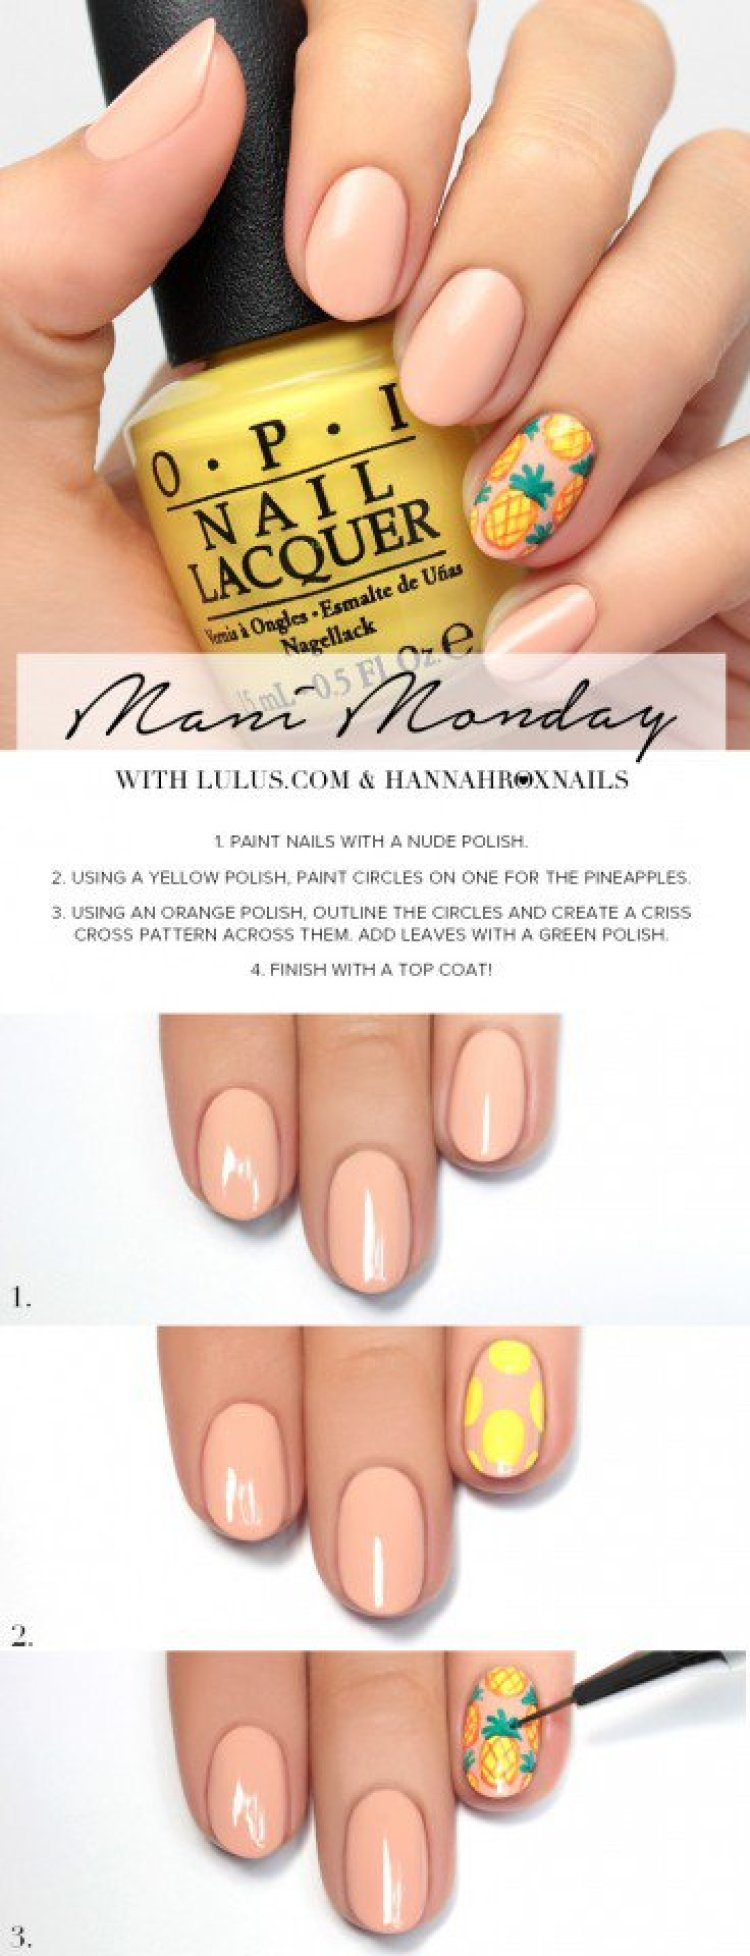 simple nail design tutorials image collections - nail art and nail